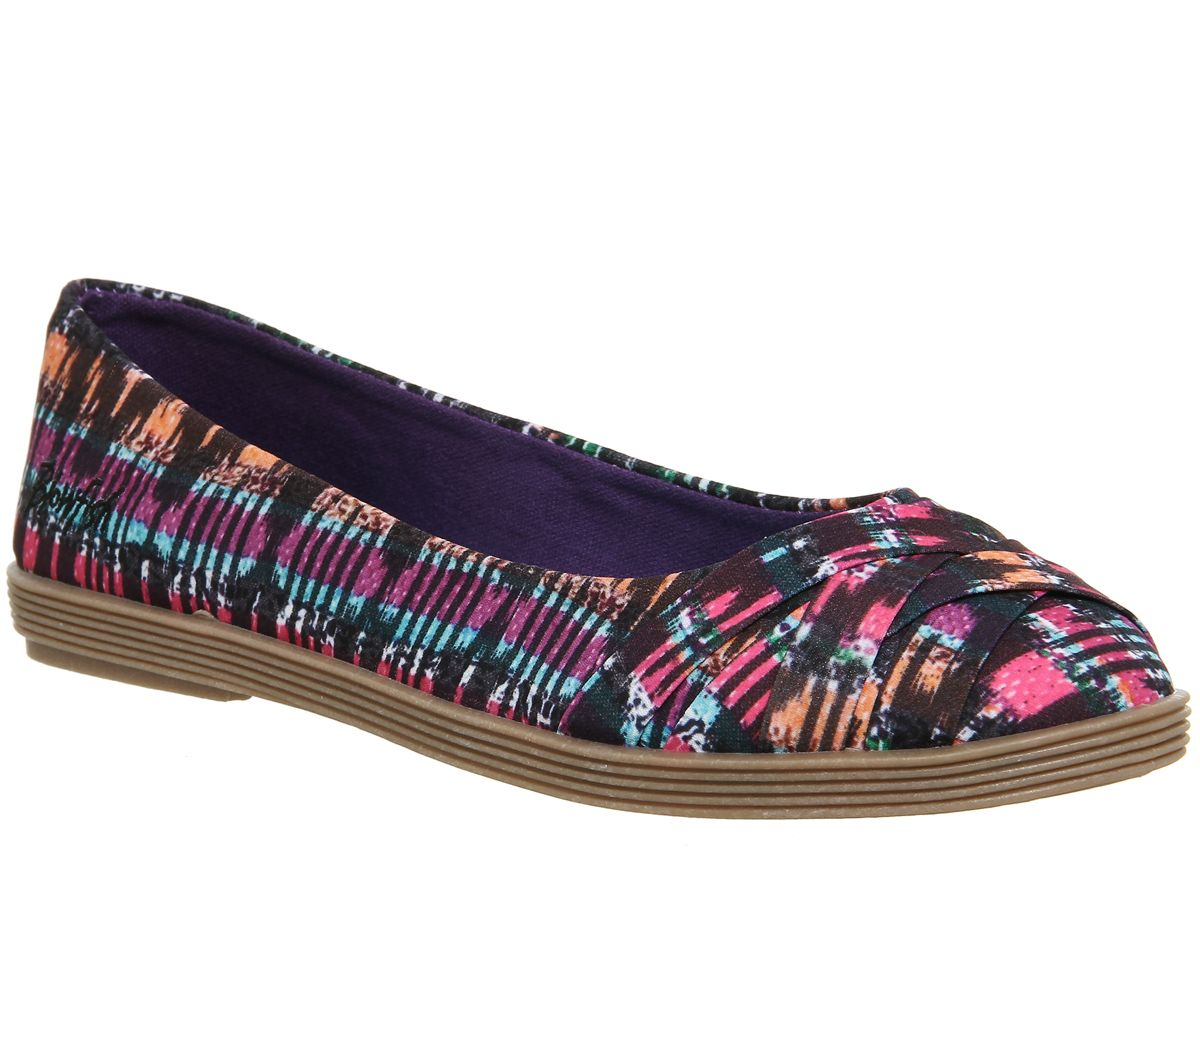 Blowfish Glo Pump Flats, Multi-Coloured